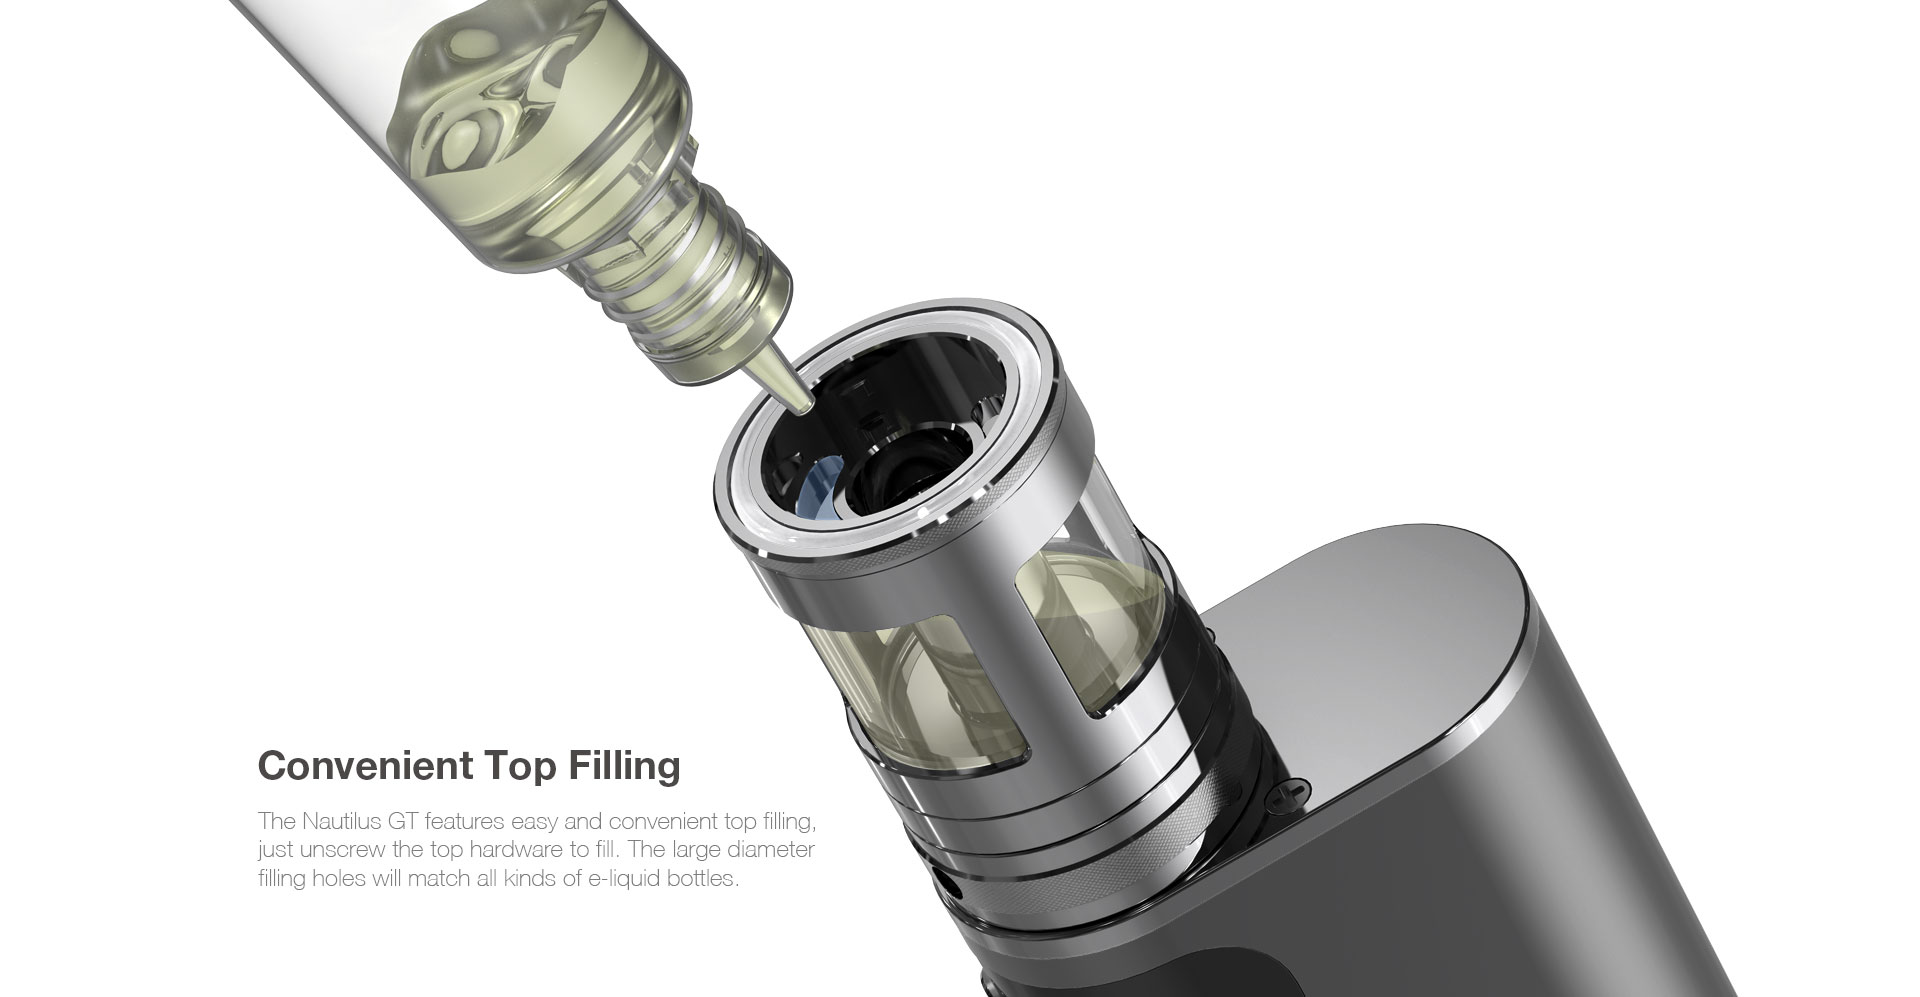 Aspire Nautilus GT Convenient and Easy Top Filling